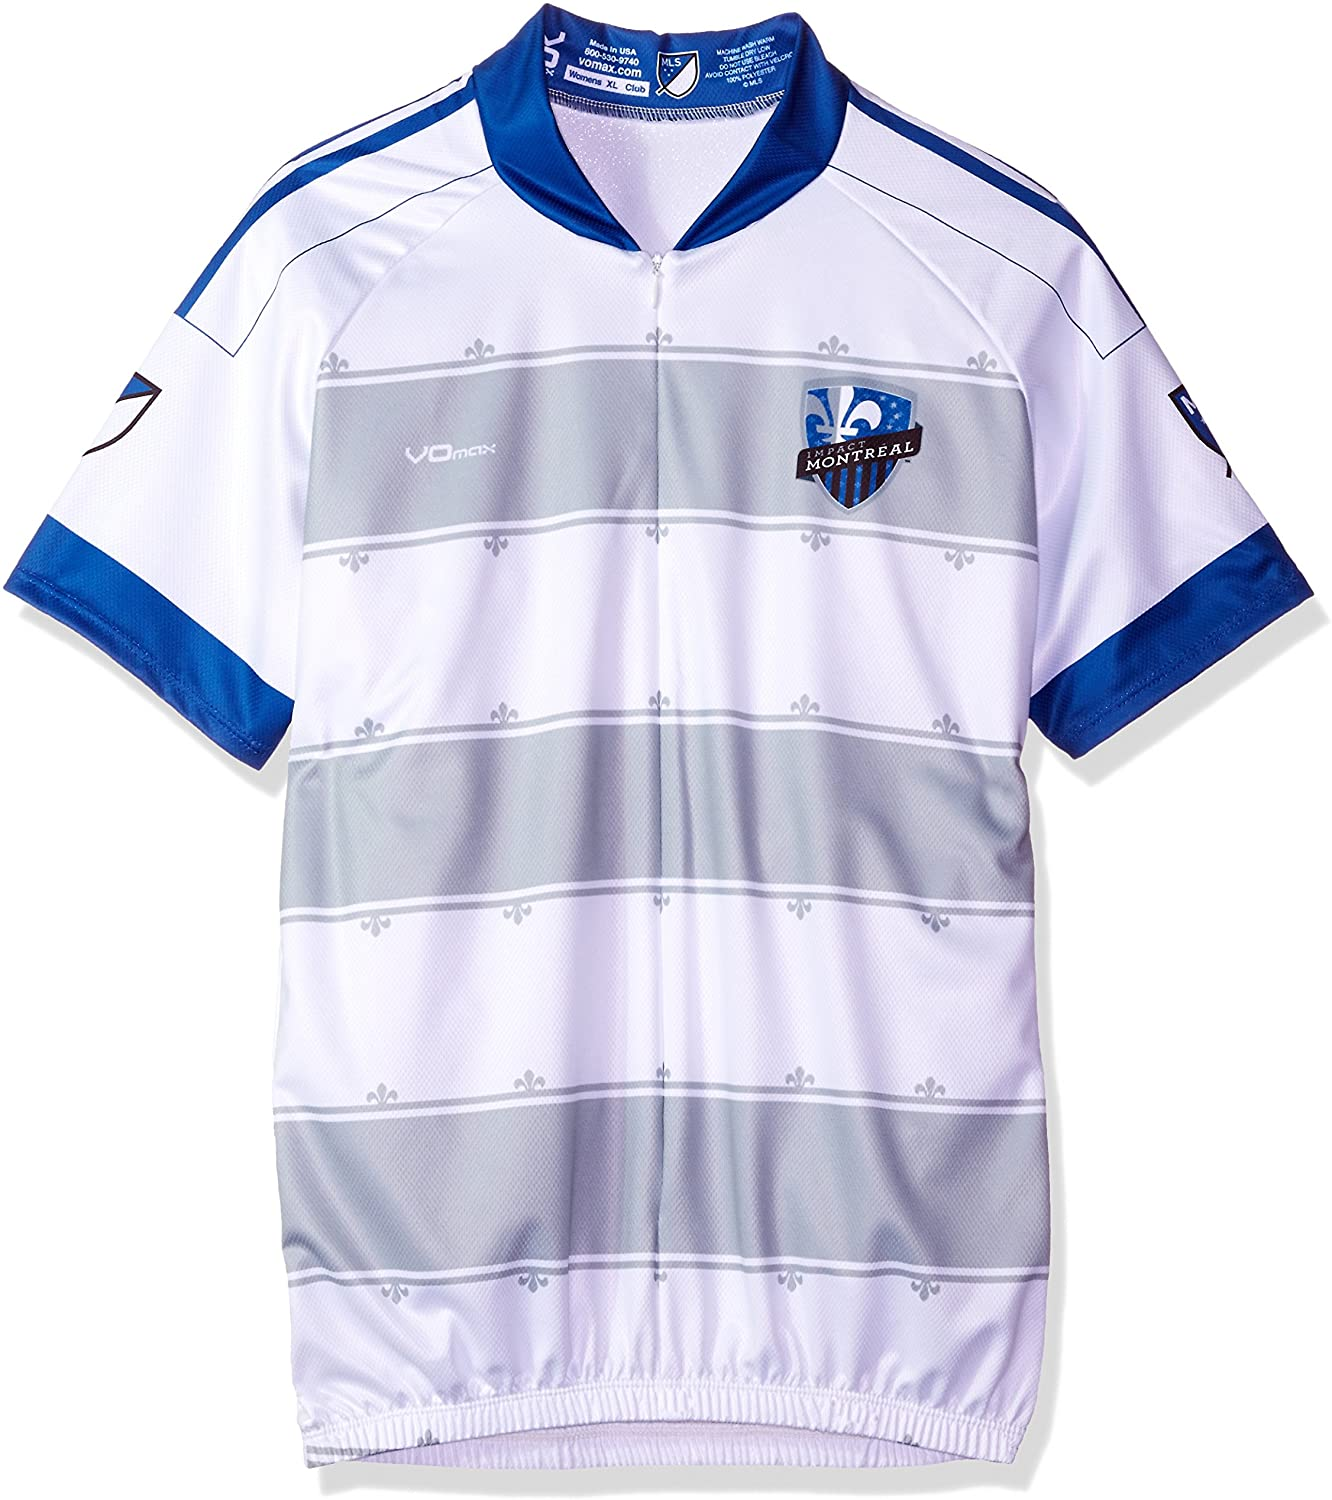 VOmax Womens MLS Short Sleeve Secondary Montreal Impact Cycling Jersey